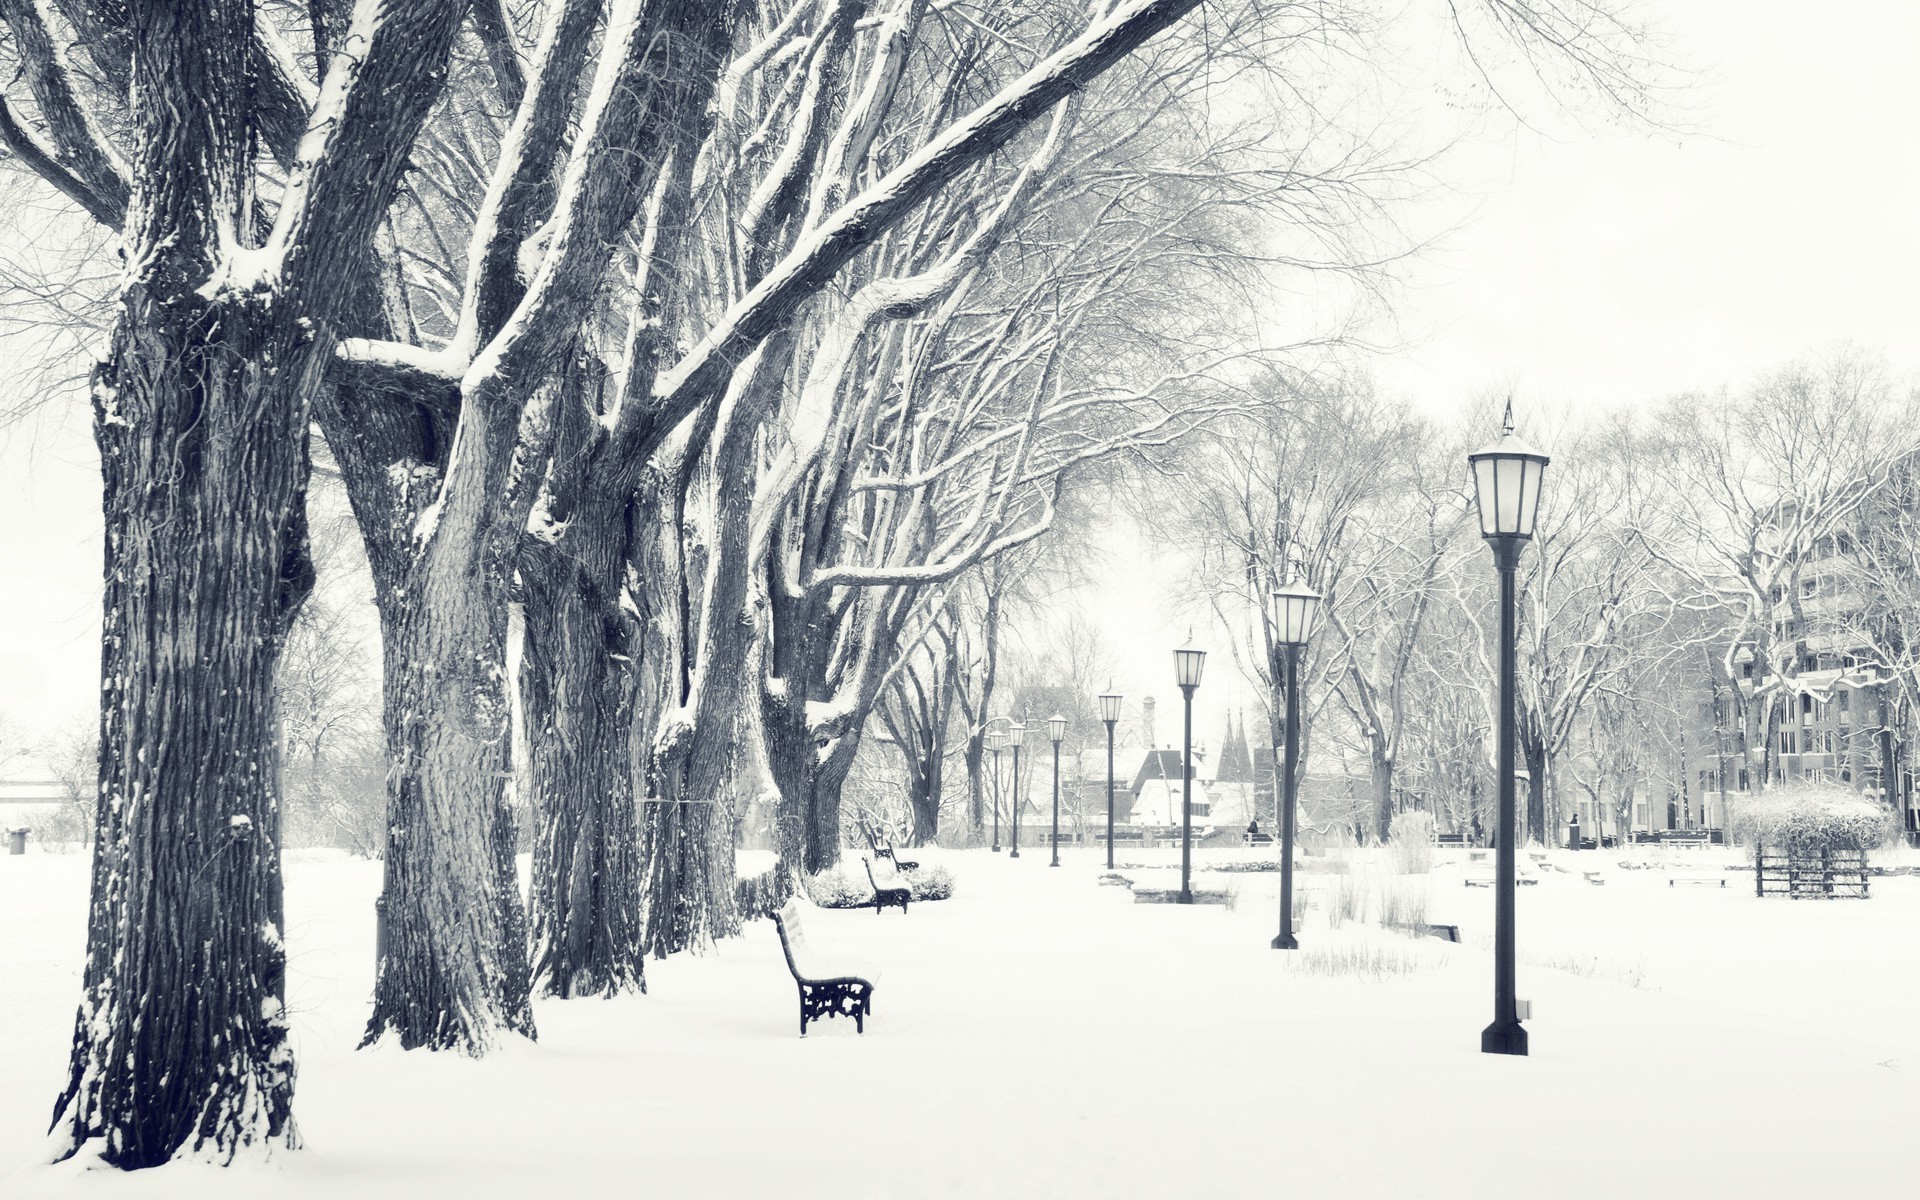 winter in the city wallpaper 70 images